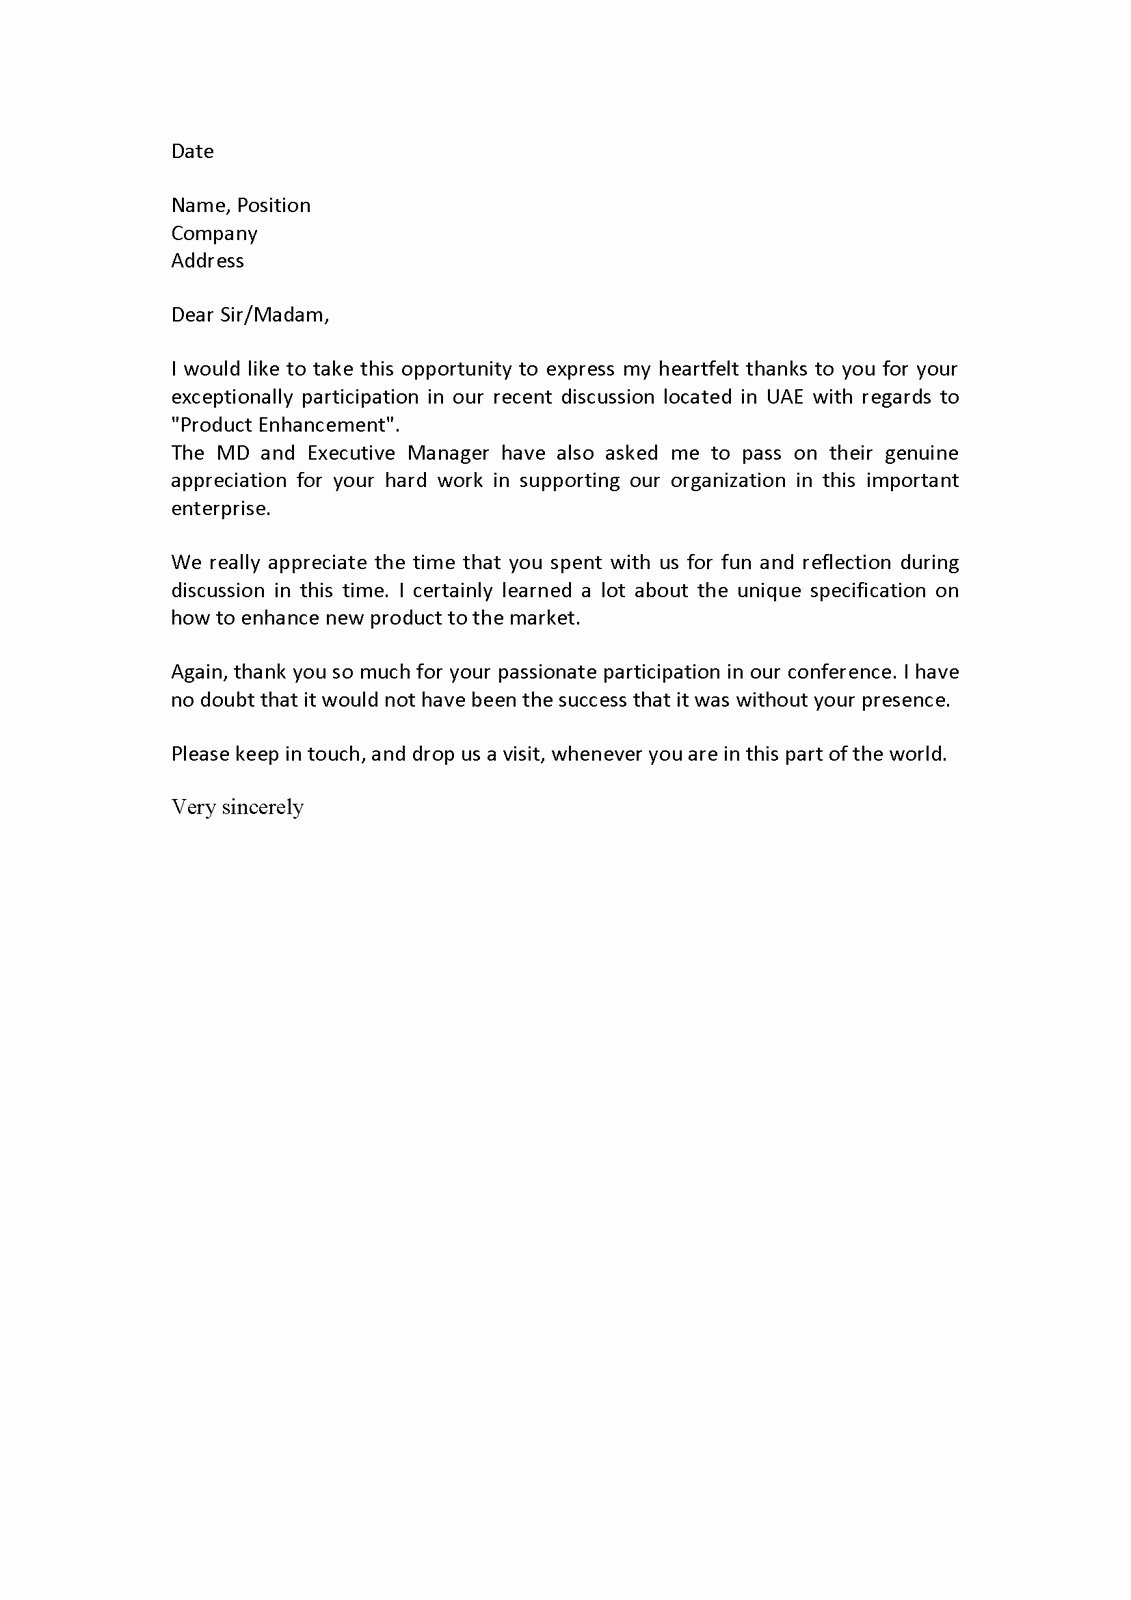 Personal Recommendation Letter Template Fresh Personal Character Reference Letter Sample Writing A